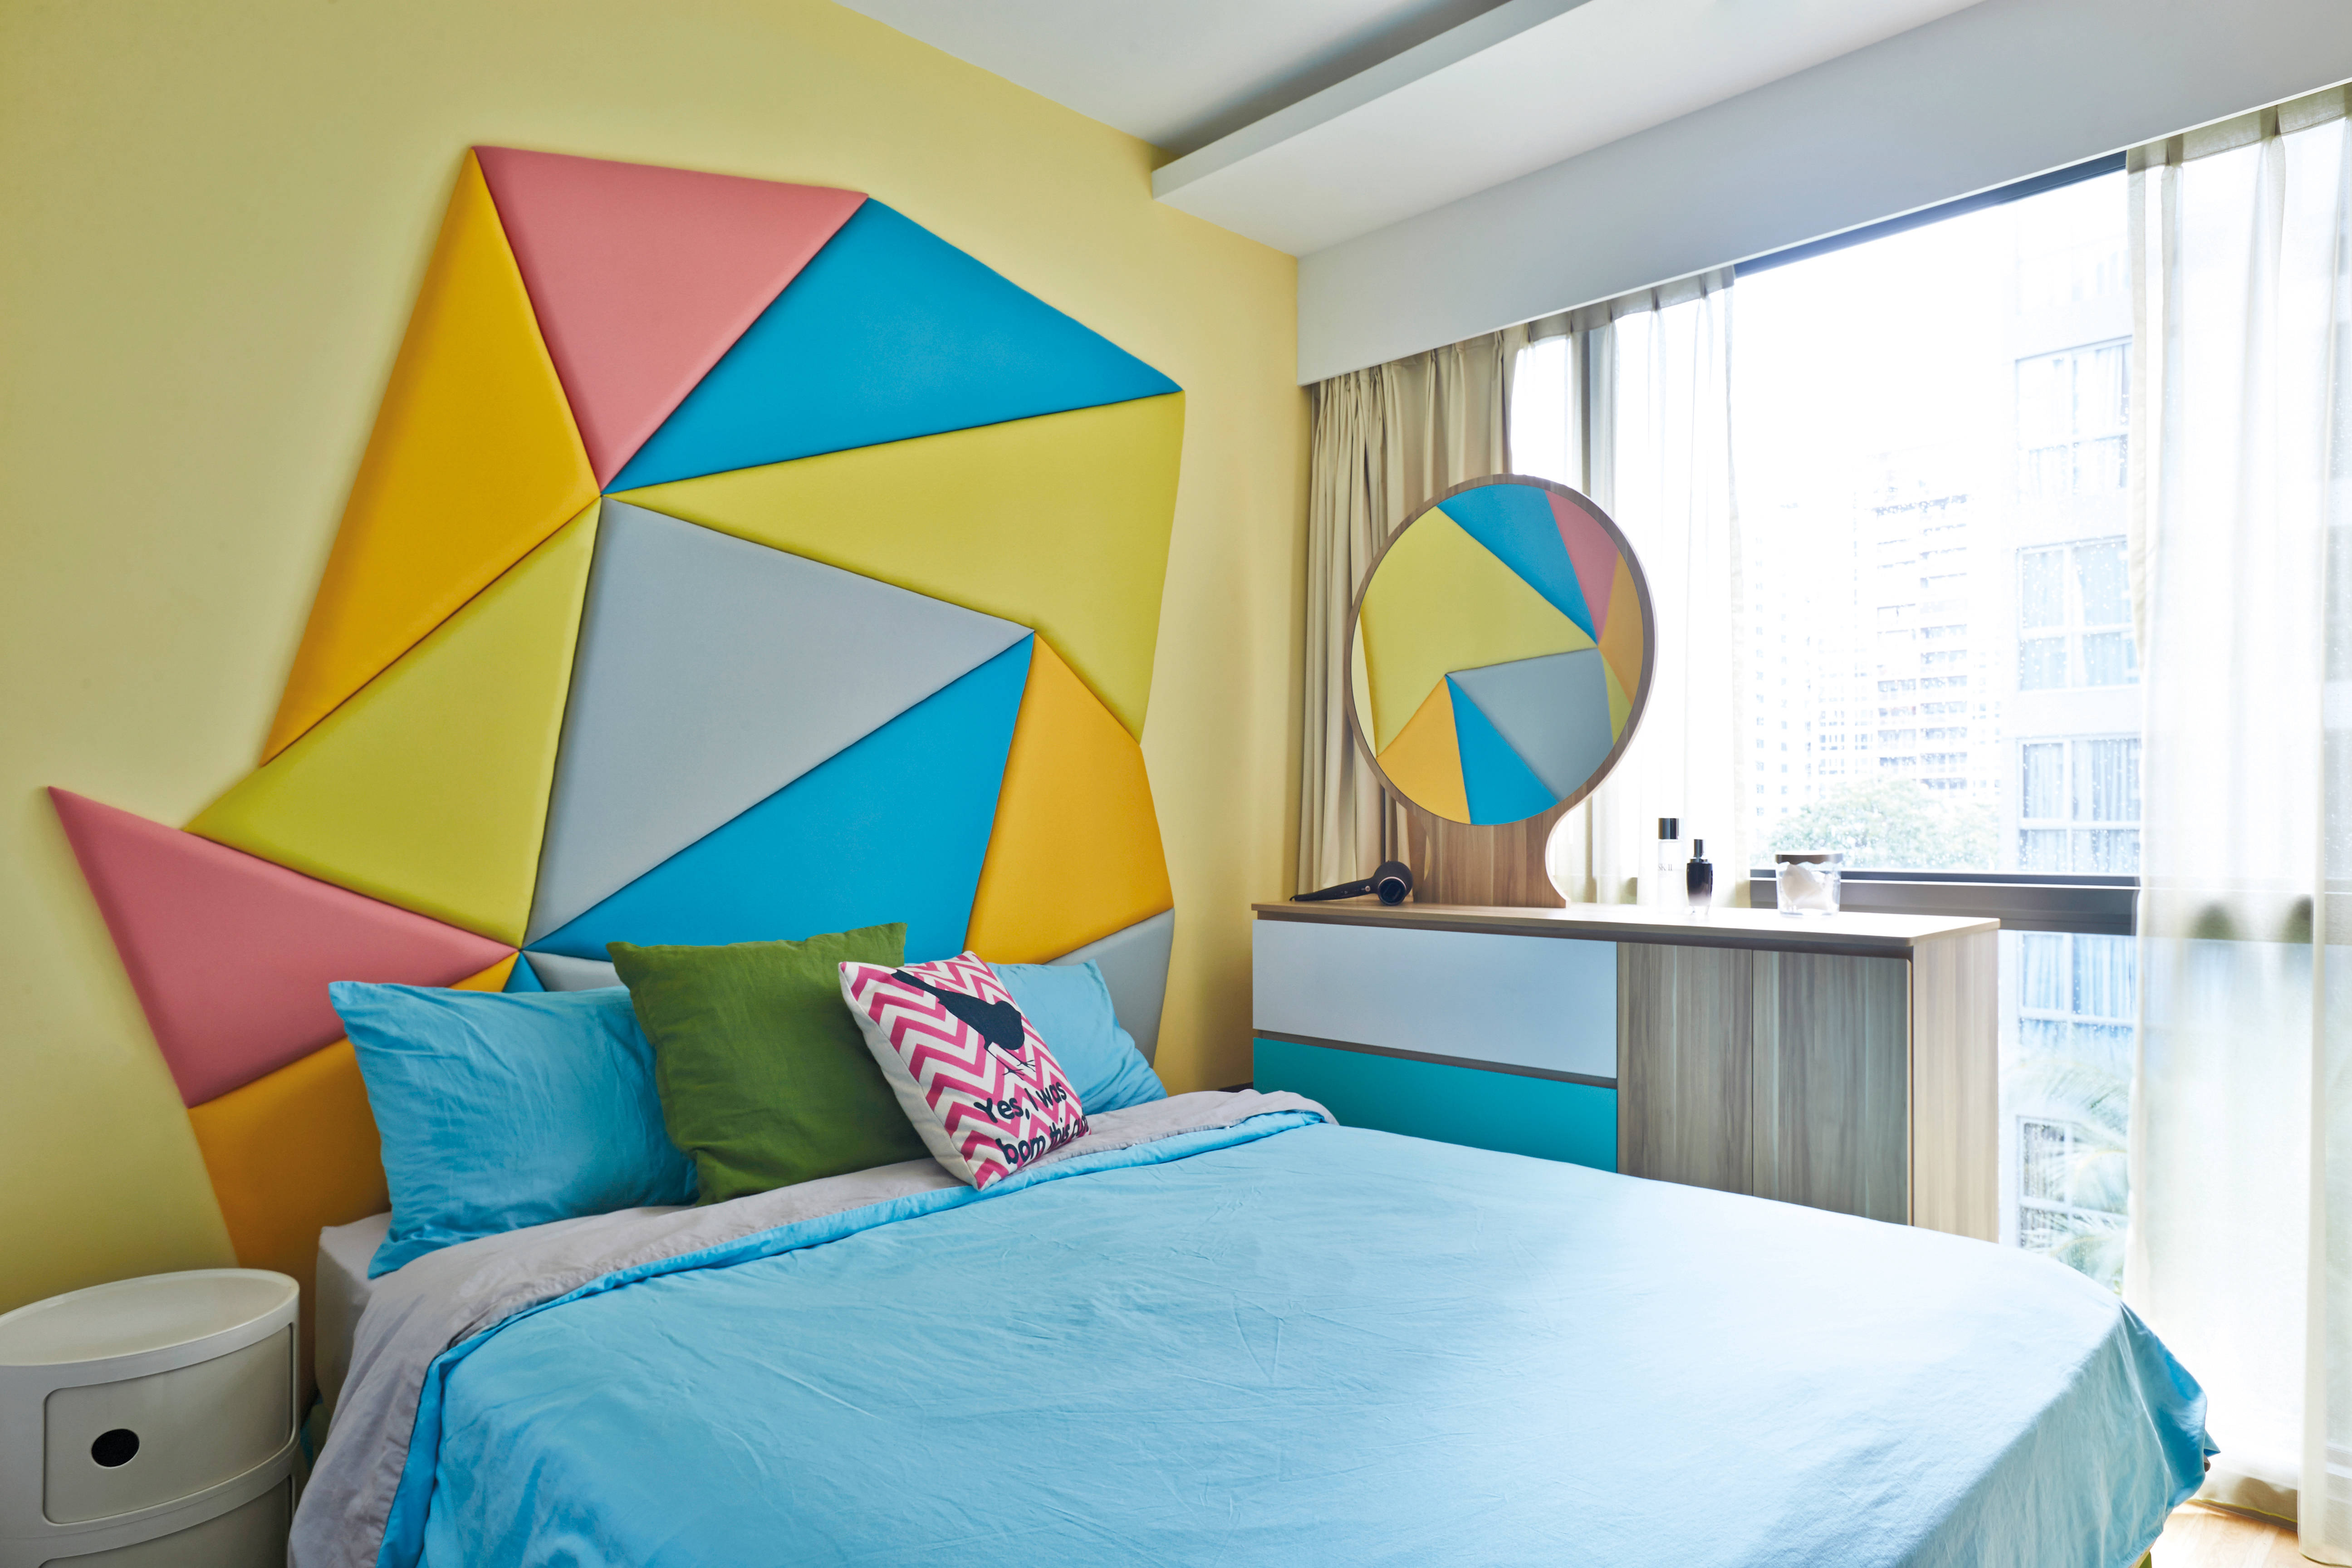 6 Unconventional Headboard Design Ideas Lookboxliving